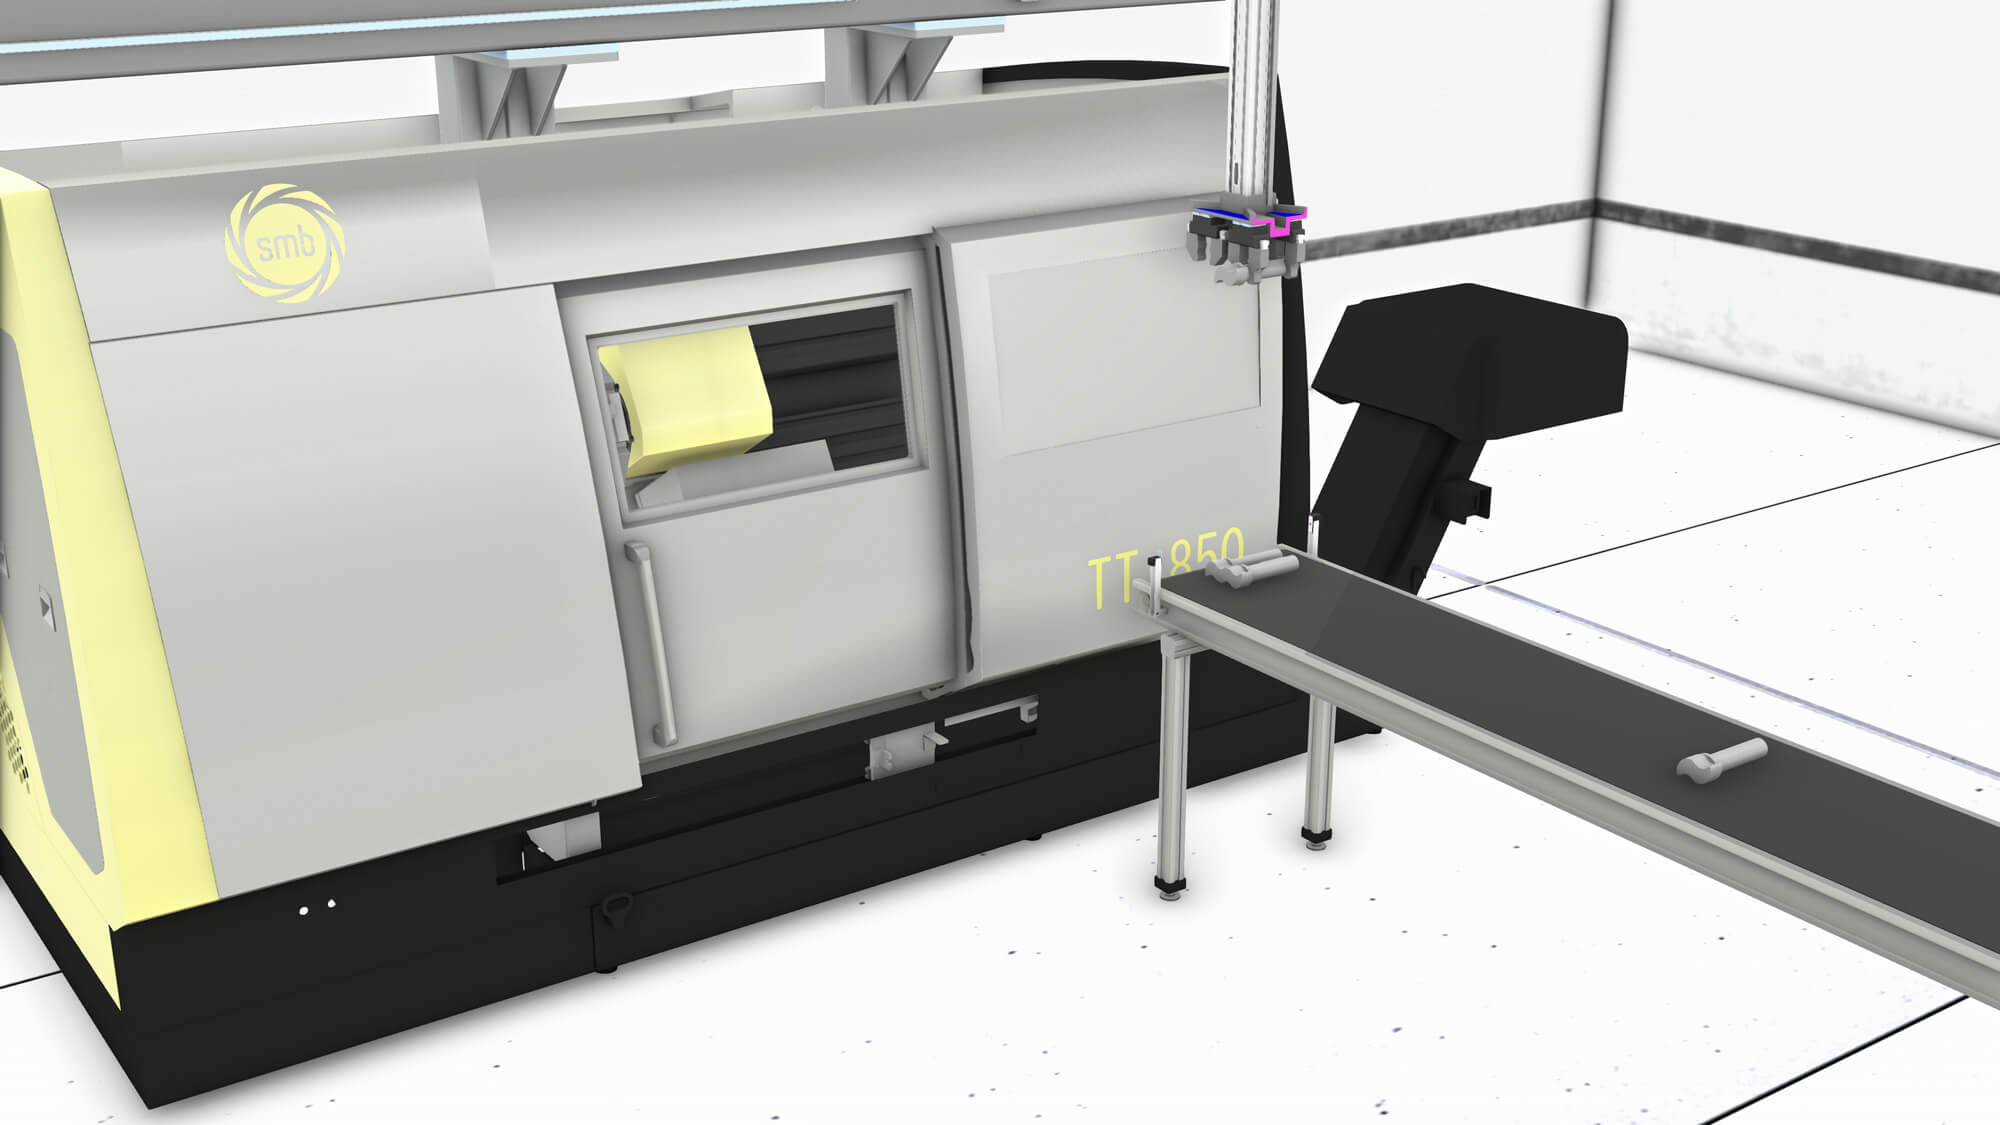 Production line simulation with a conveyor belt